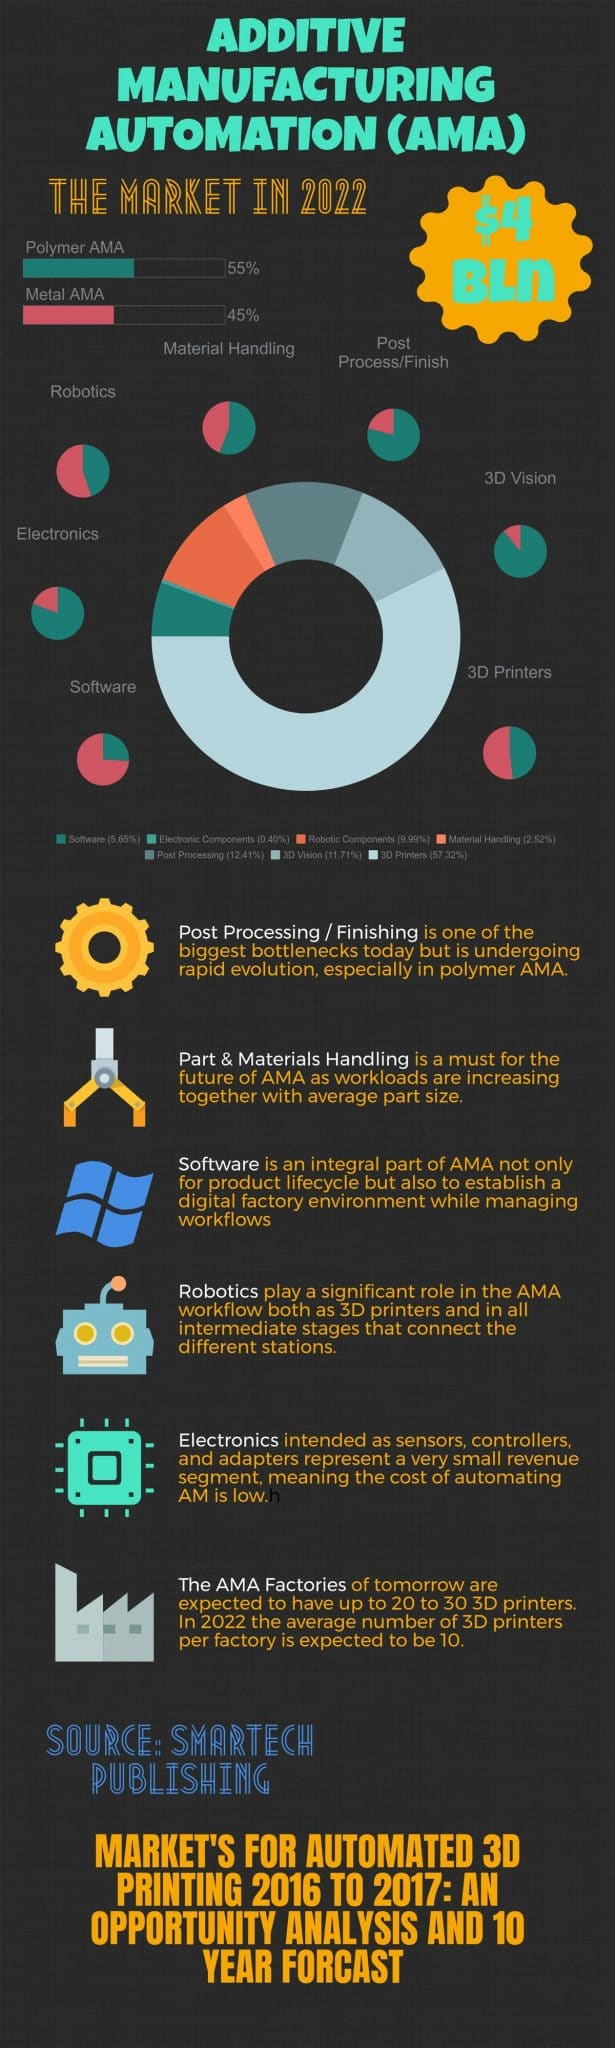 Market for Automated Additive Manufacturing (AMA) Set to Top $4B